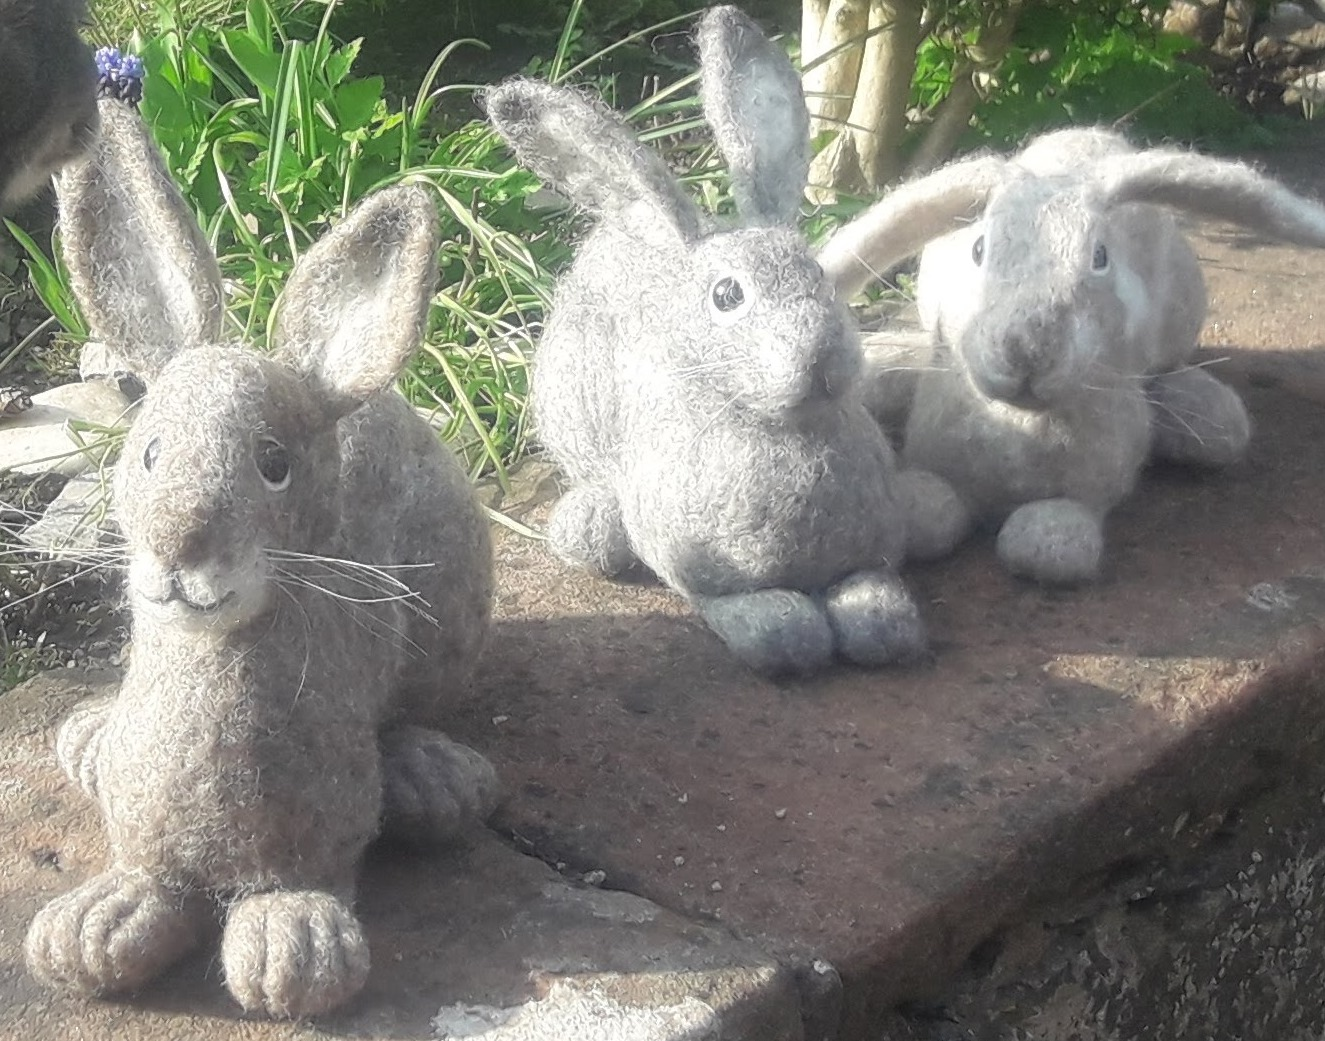 Needle Felt Bunny Workshop in Cumbria